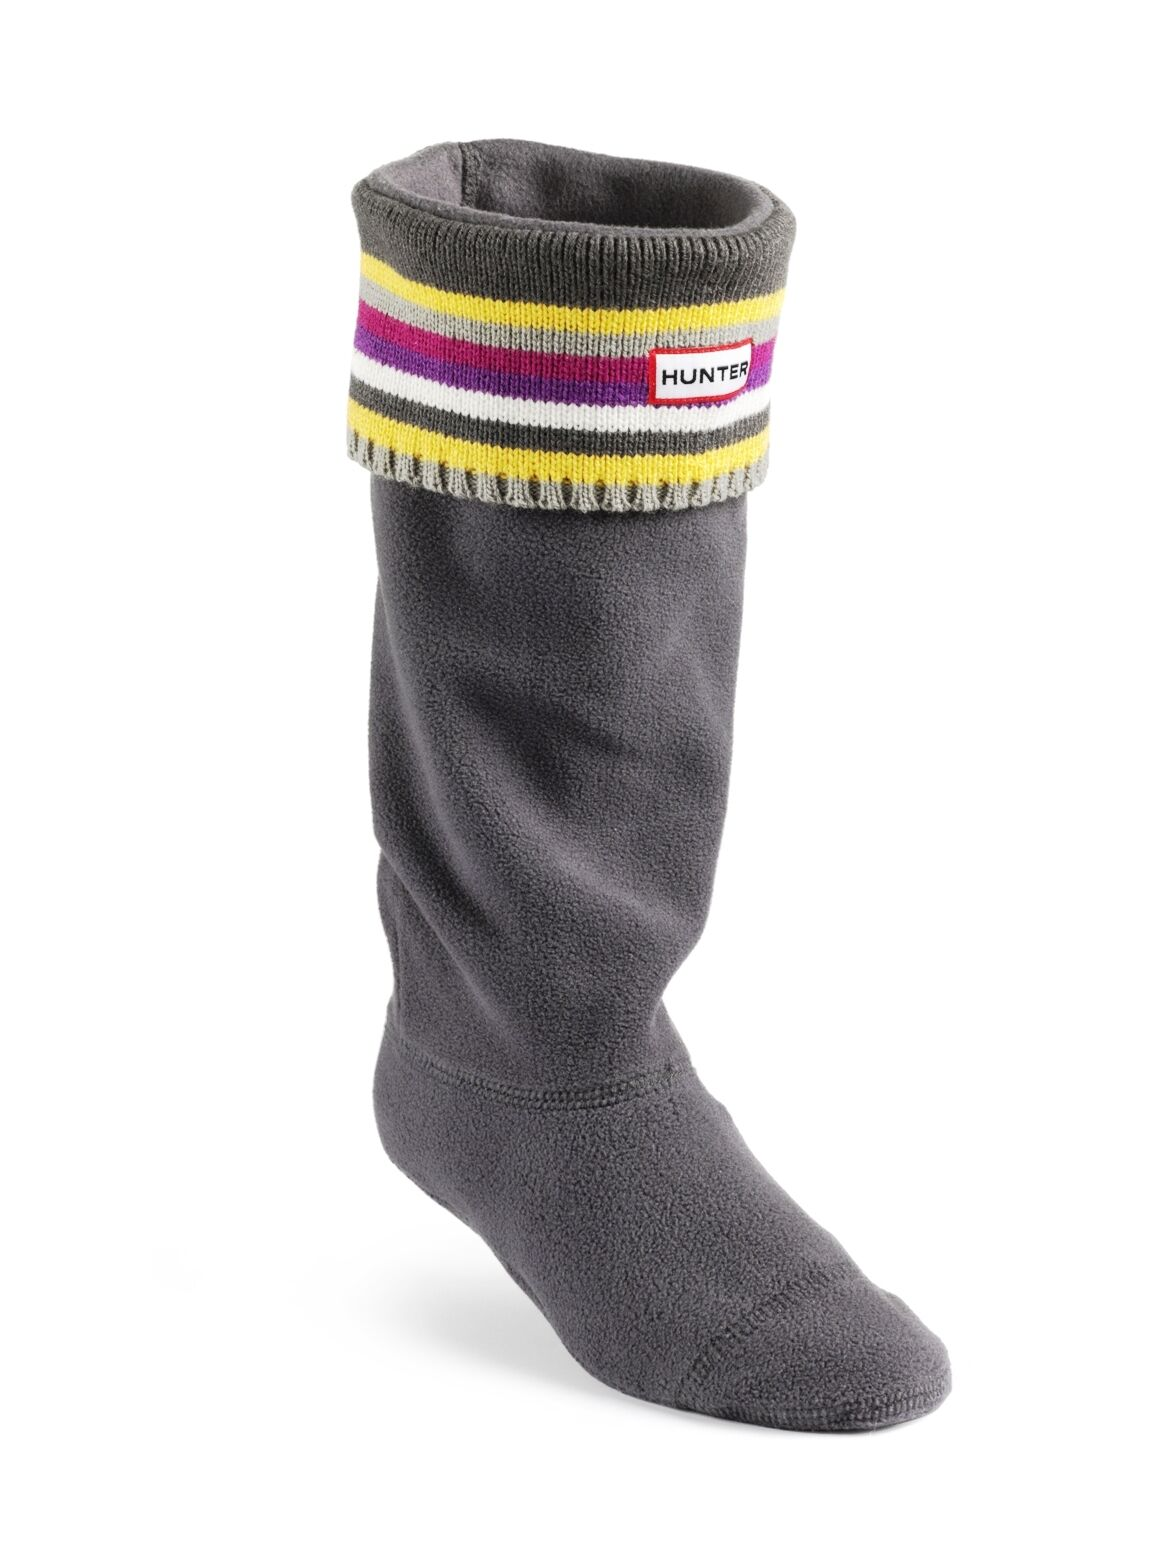 Hunter Welly Warmers Striped Multi Heathers S24186 MHE Adult Size Med Fits 3,4,5